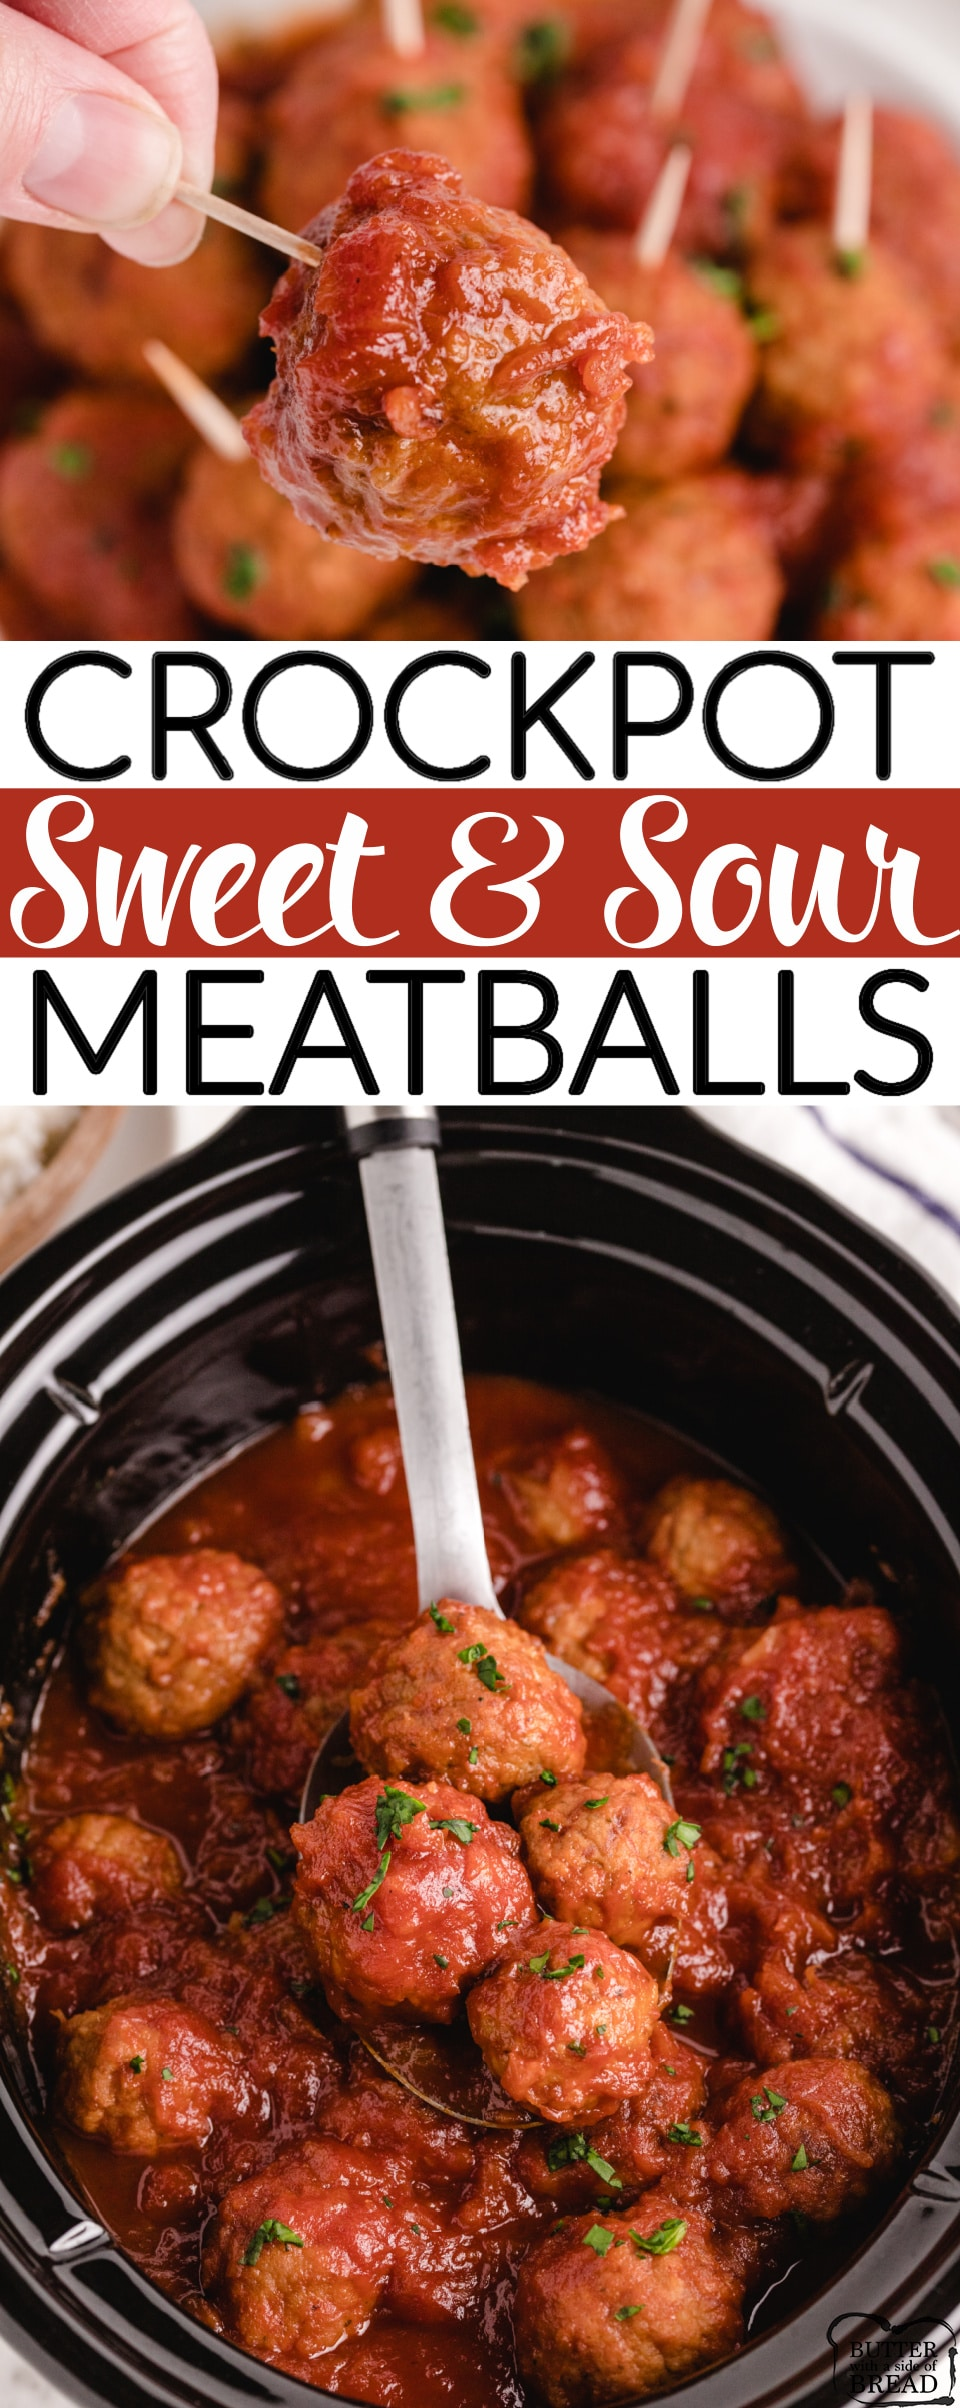 Crockpot Sweet and Sour Meatballsmade with frozen meatballs and a simple, homemade sweet and sour sauce. Sweet and Sour Meatballs are perfect for an appetizer or for a main dish!